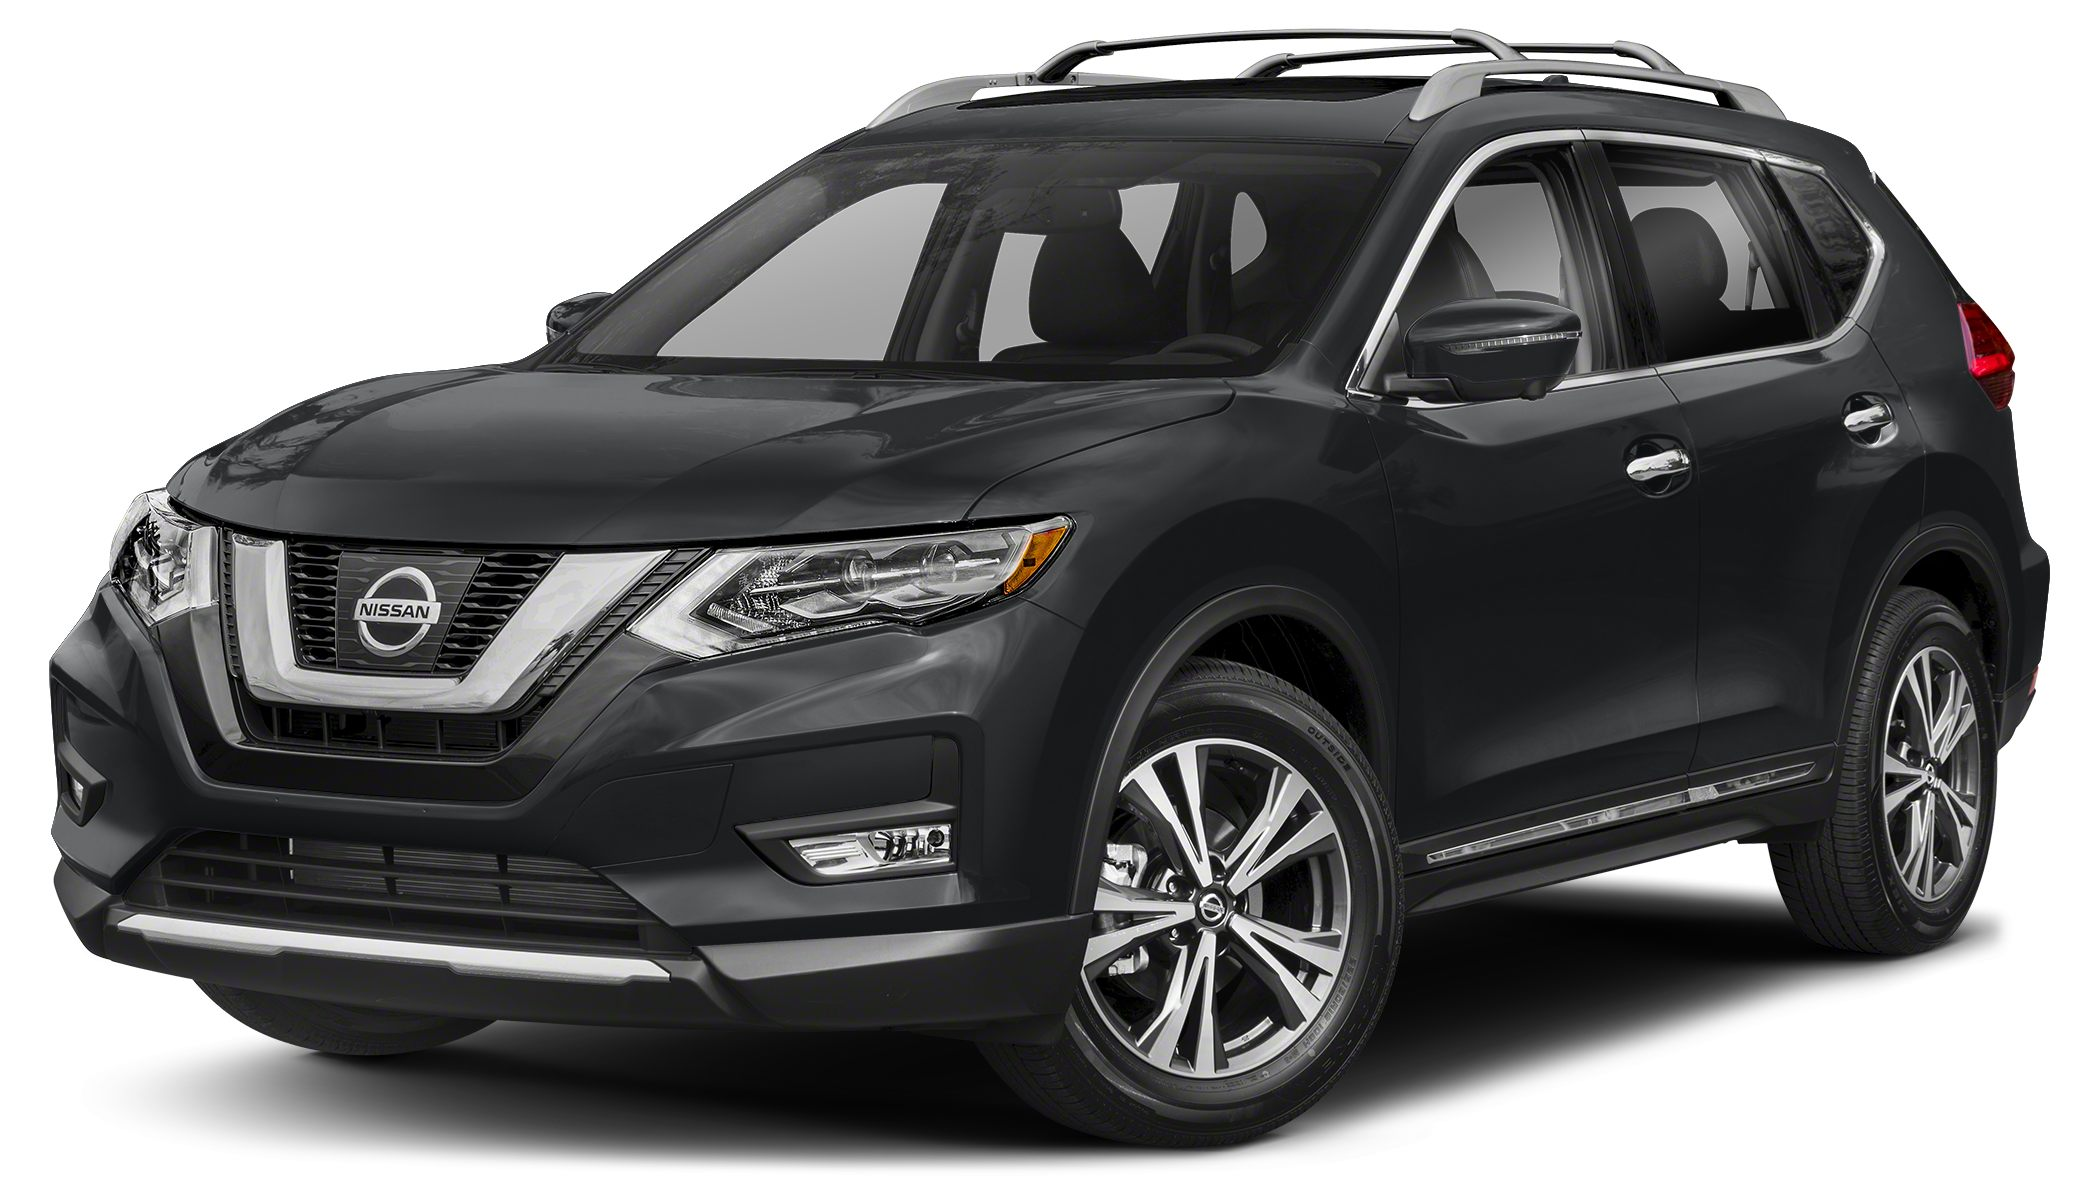 2017 Nissan Rogue SL New Arrival This 2017 Nissan Rogue SL will sell fast This Rogue has many va